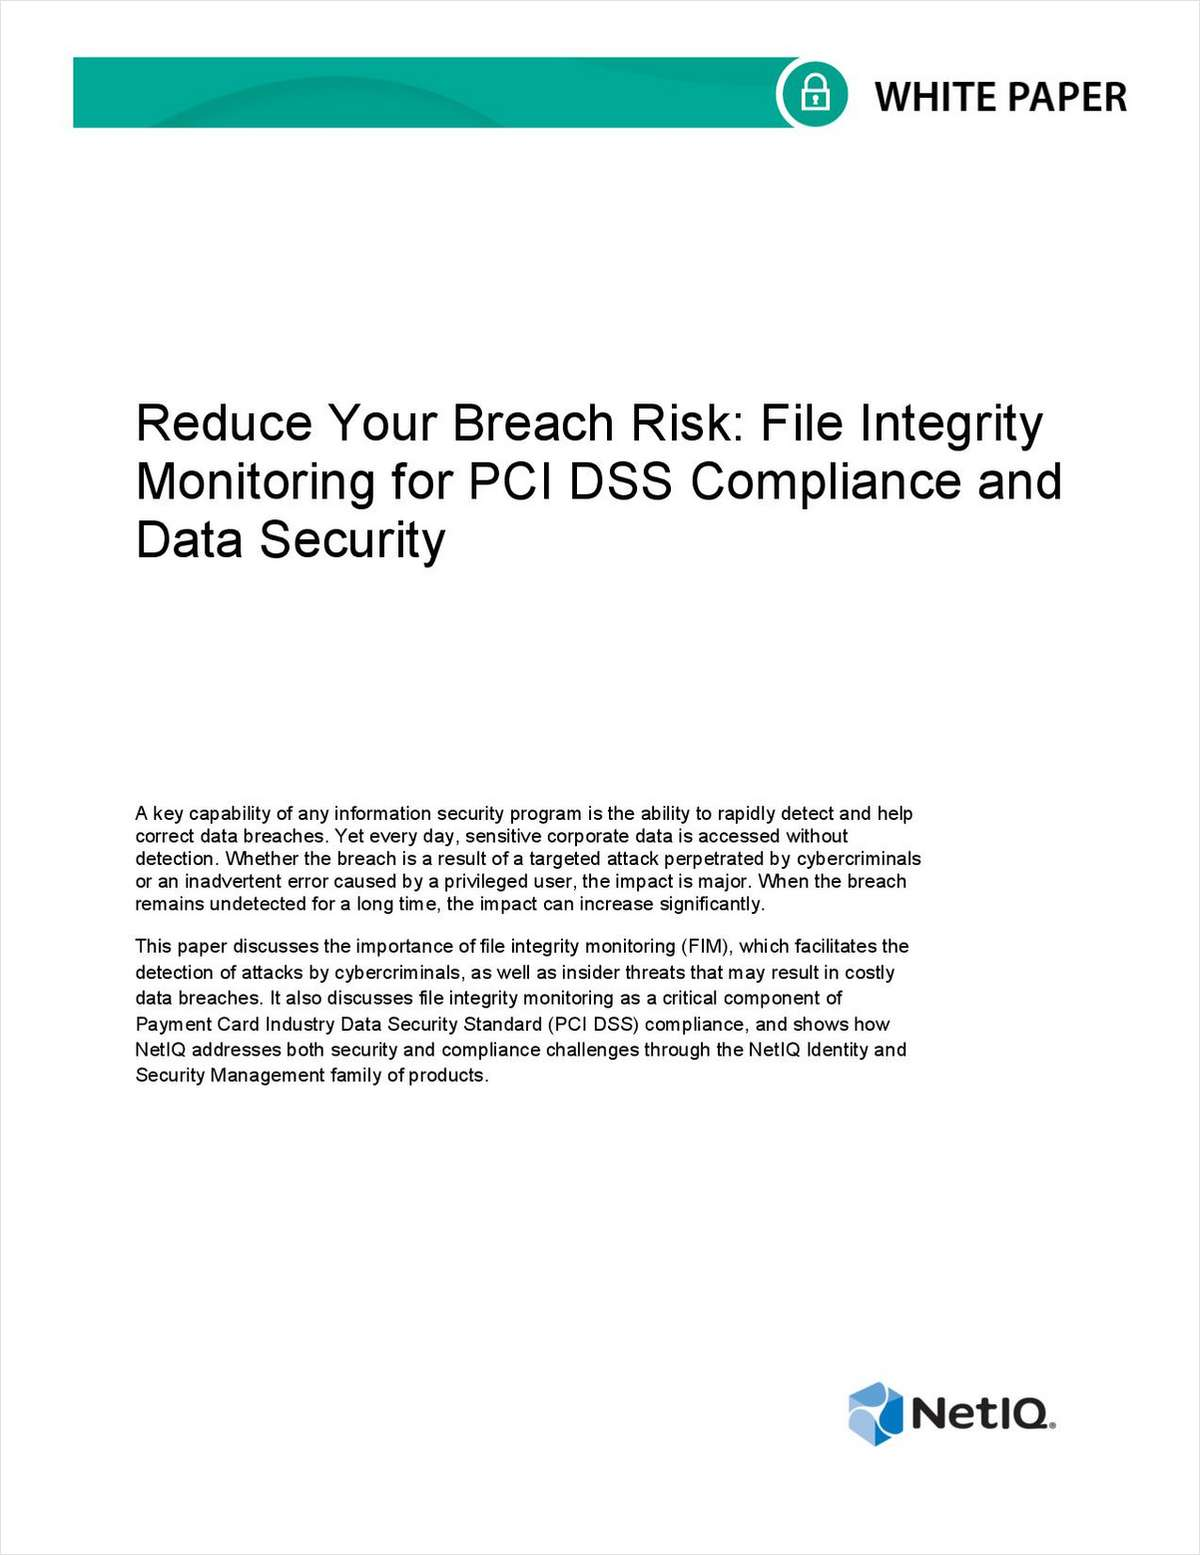 Reduce Your Breach Risk with File Integrity Monitoring